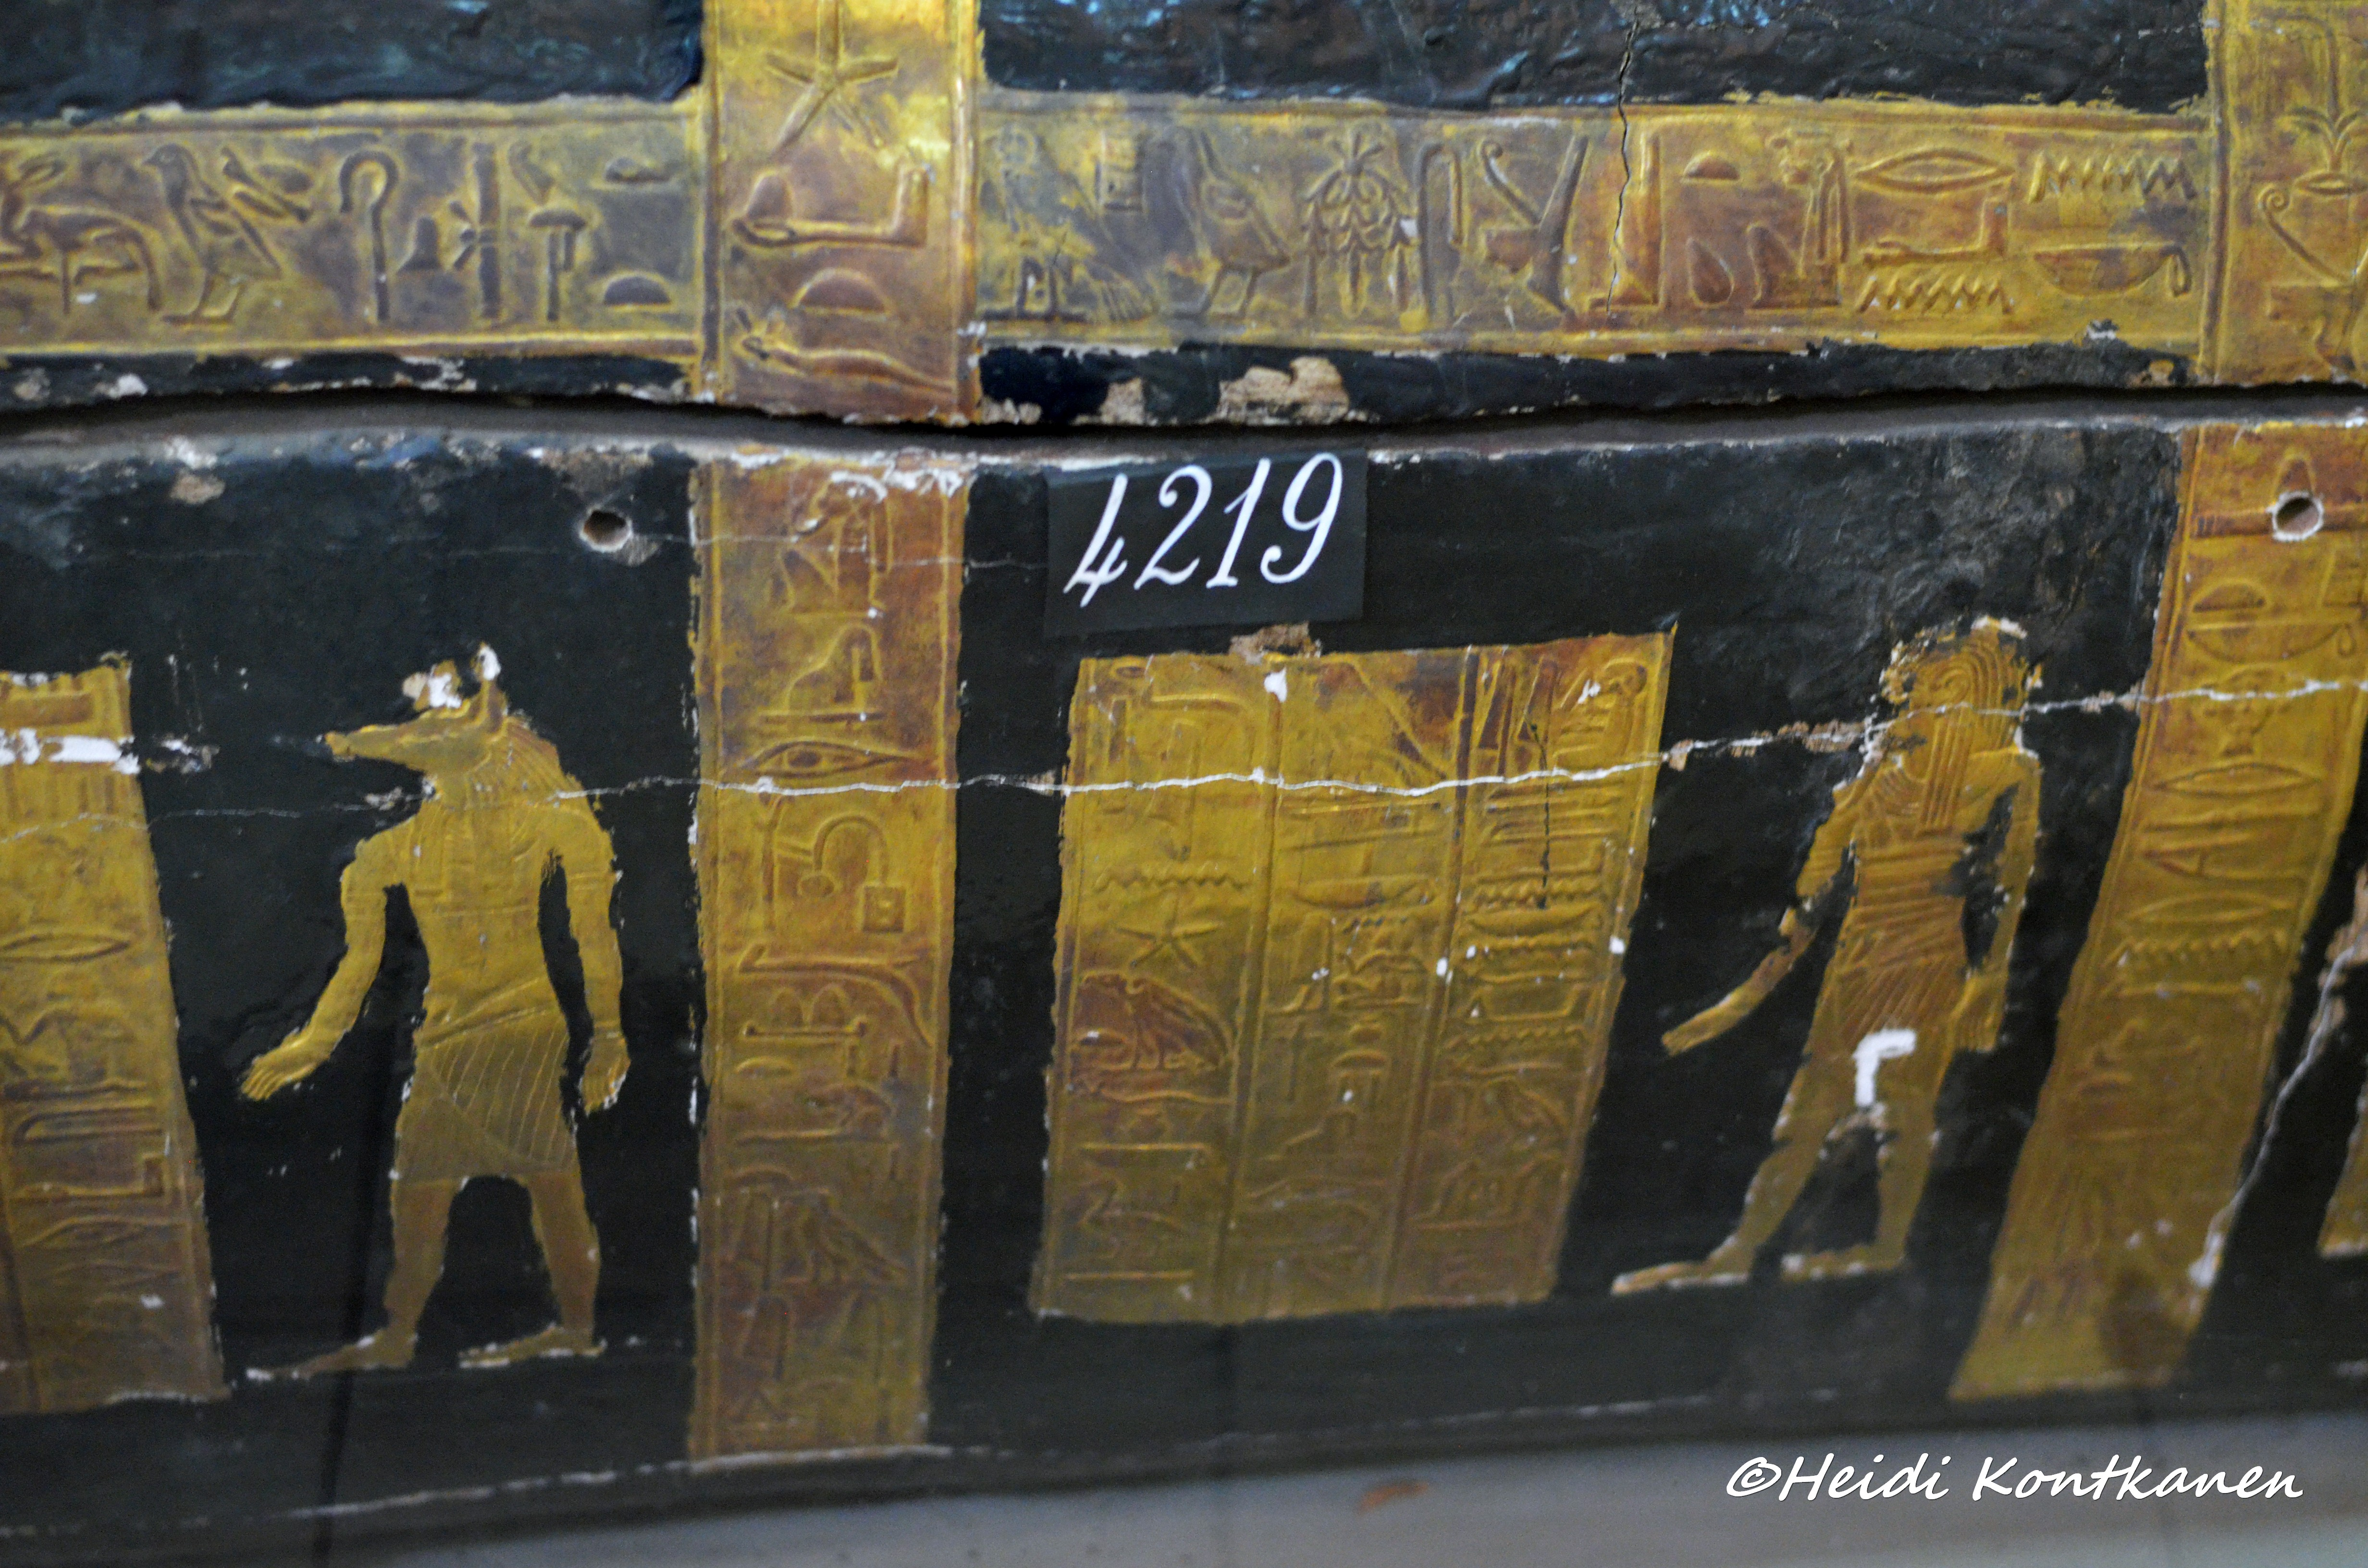 Side of outer coffin with gilded figures and text